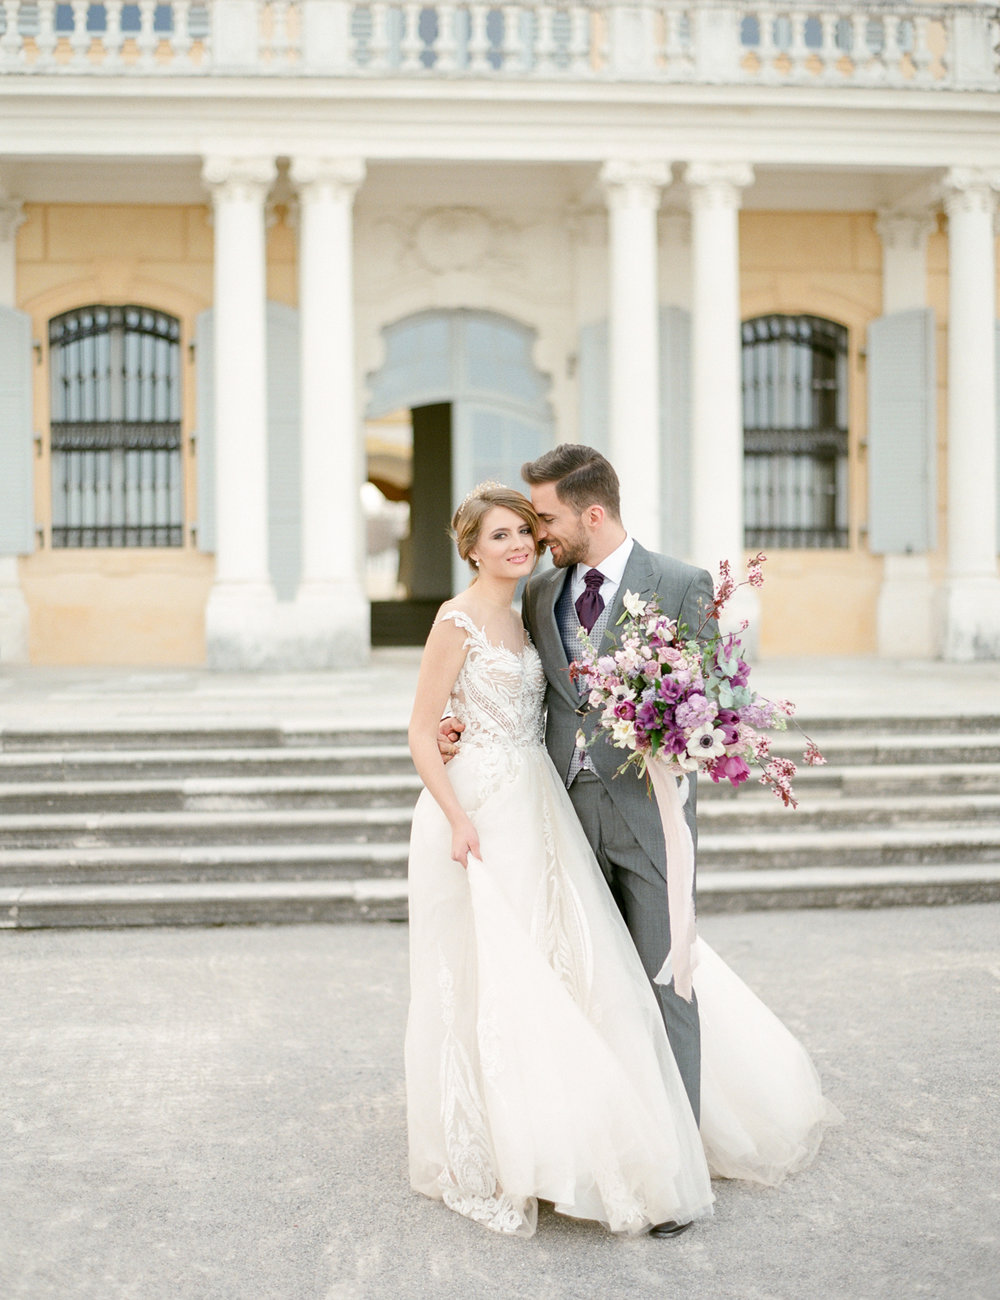 schlosshof wedding editorial vienna wedding photographer nikol bodnarova film wedding photographer189.JPG